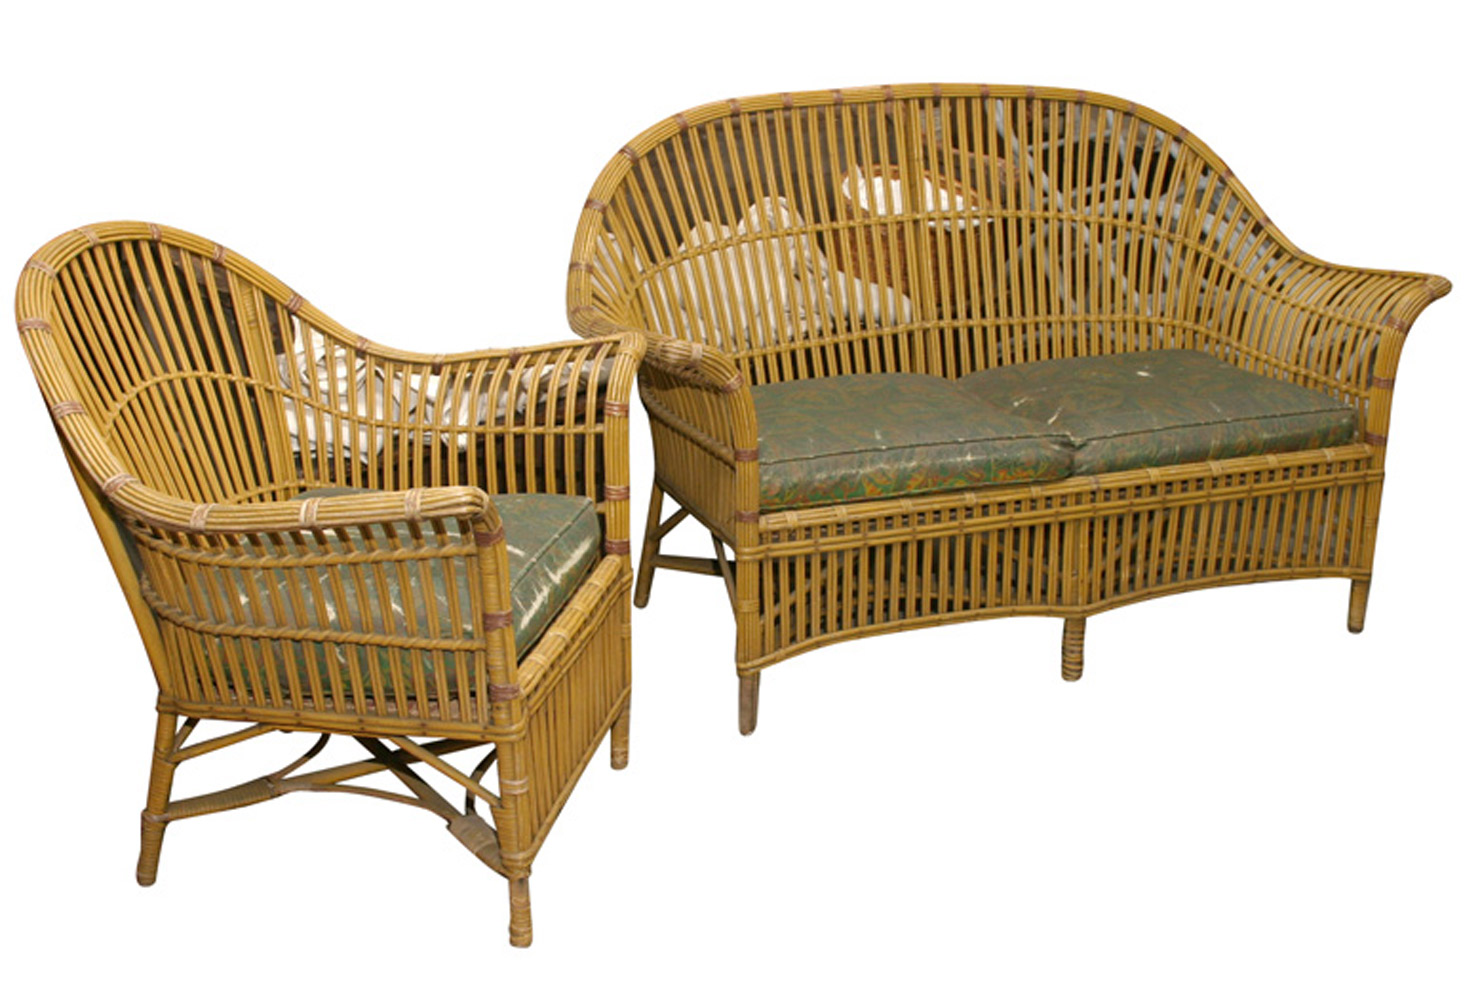 1930s Stick Wicker Sofa Chair Set Omero Home